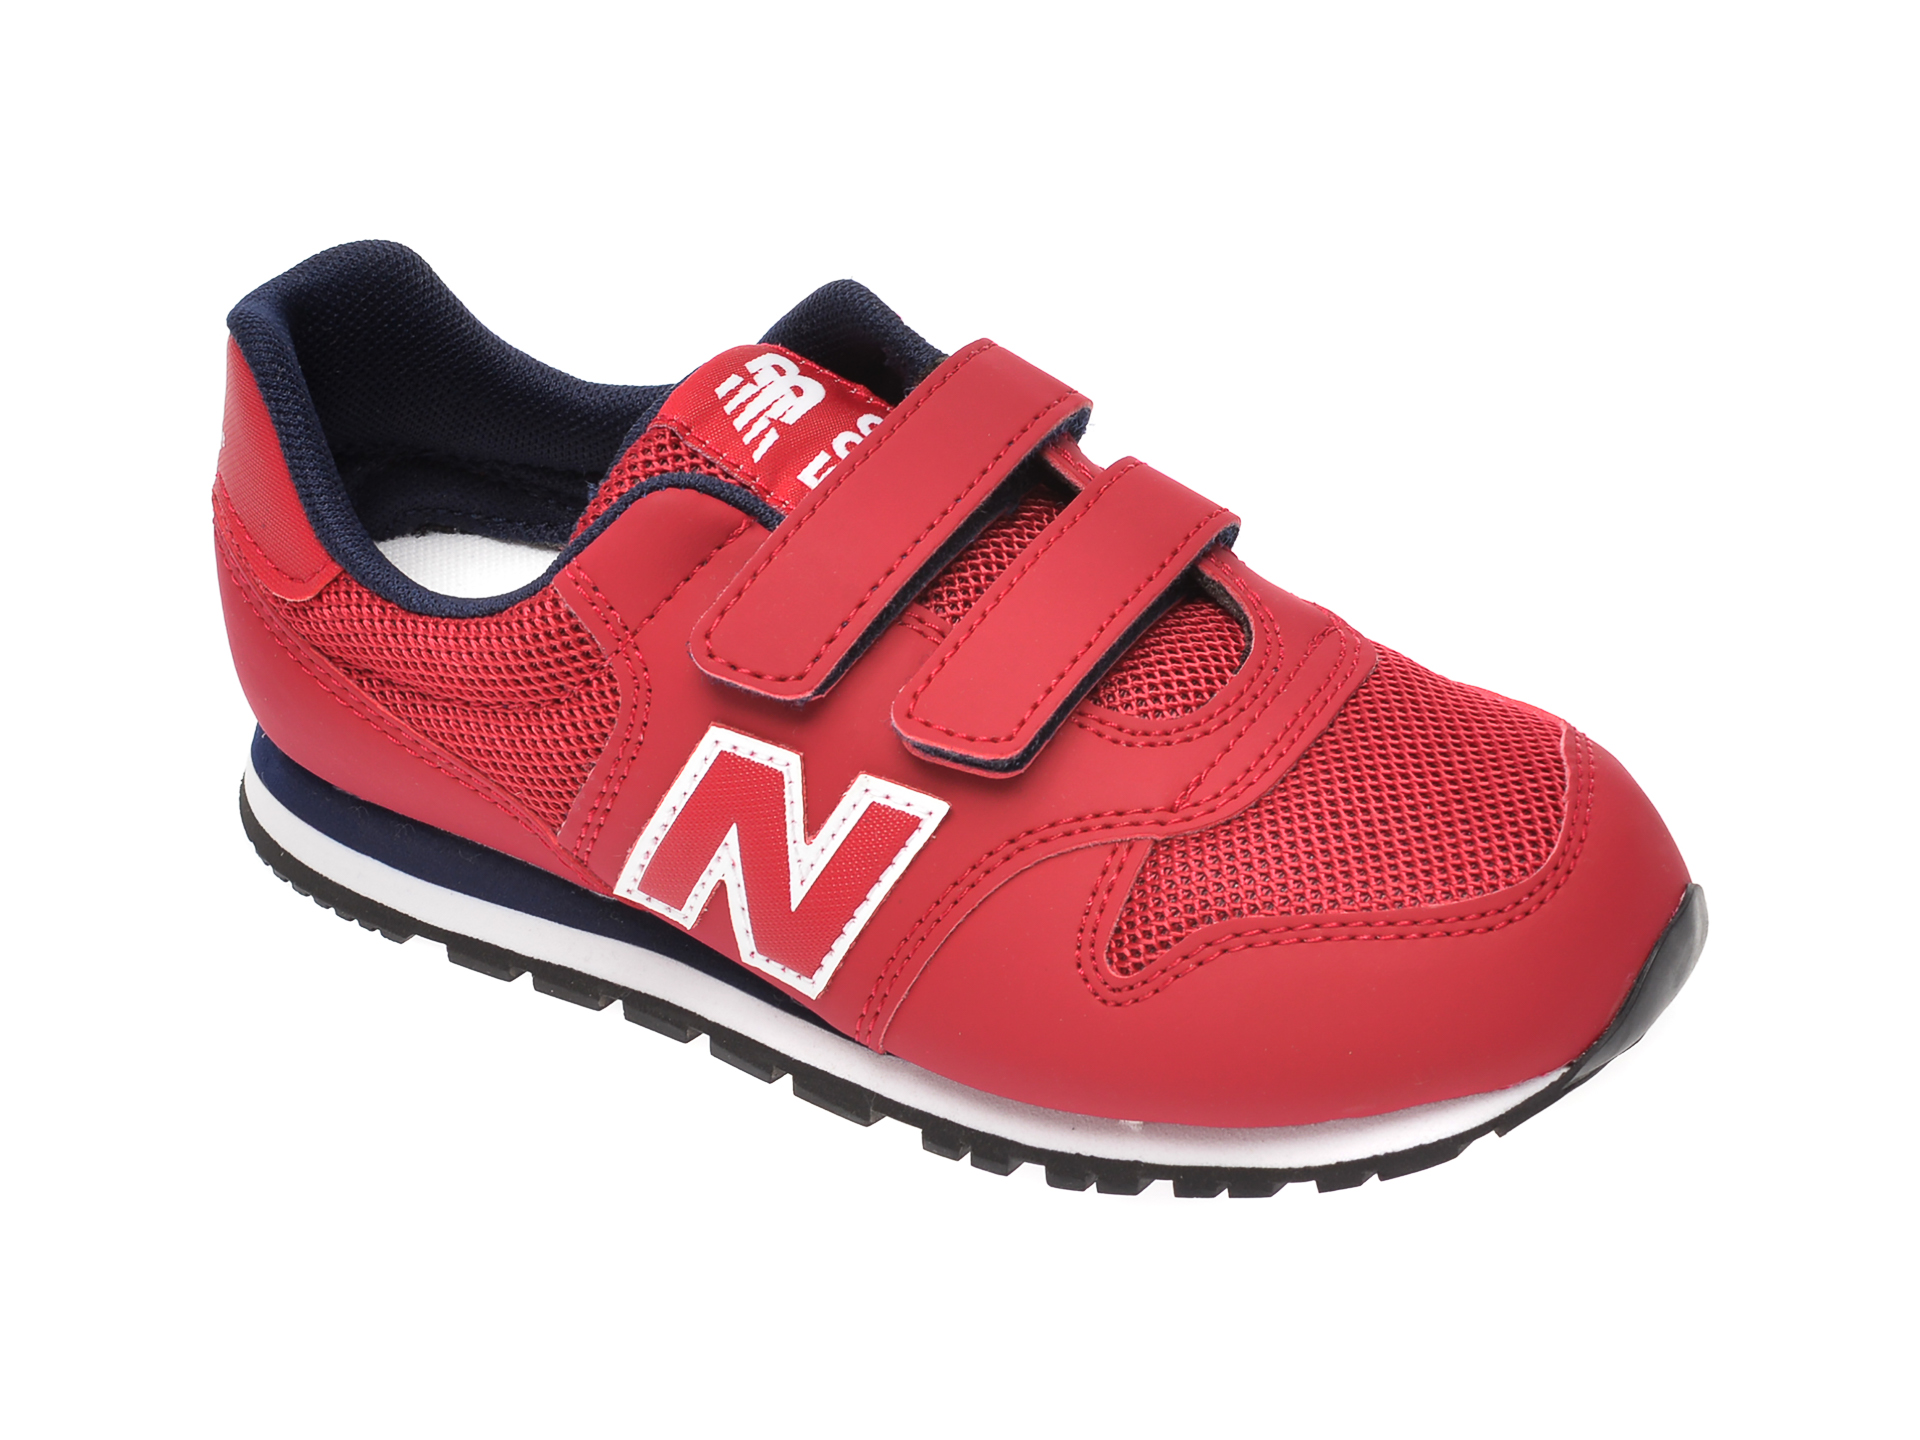 Pantofi sport NEW BALANCE rosii, YV500, din piele ecologica si material textil